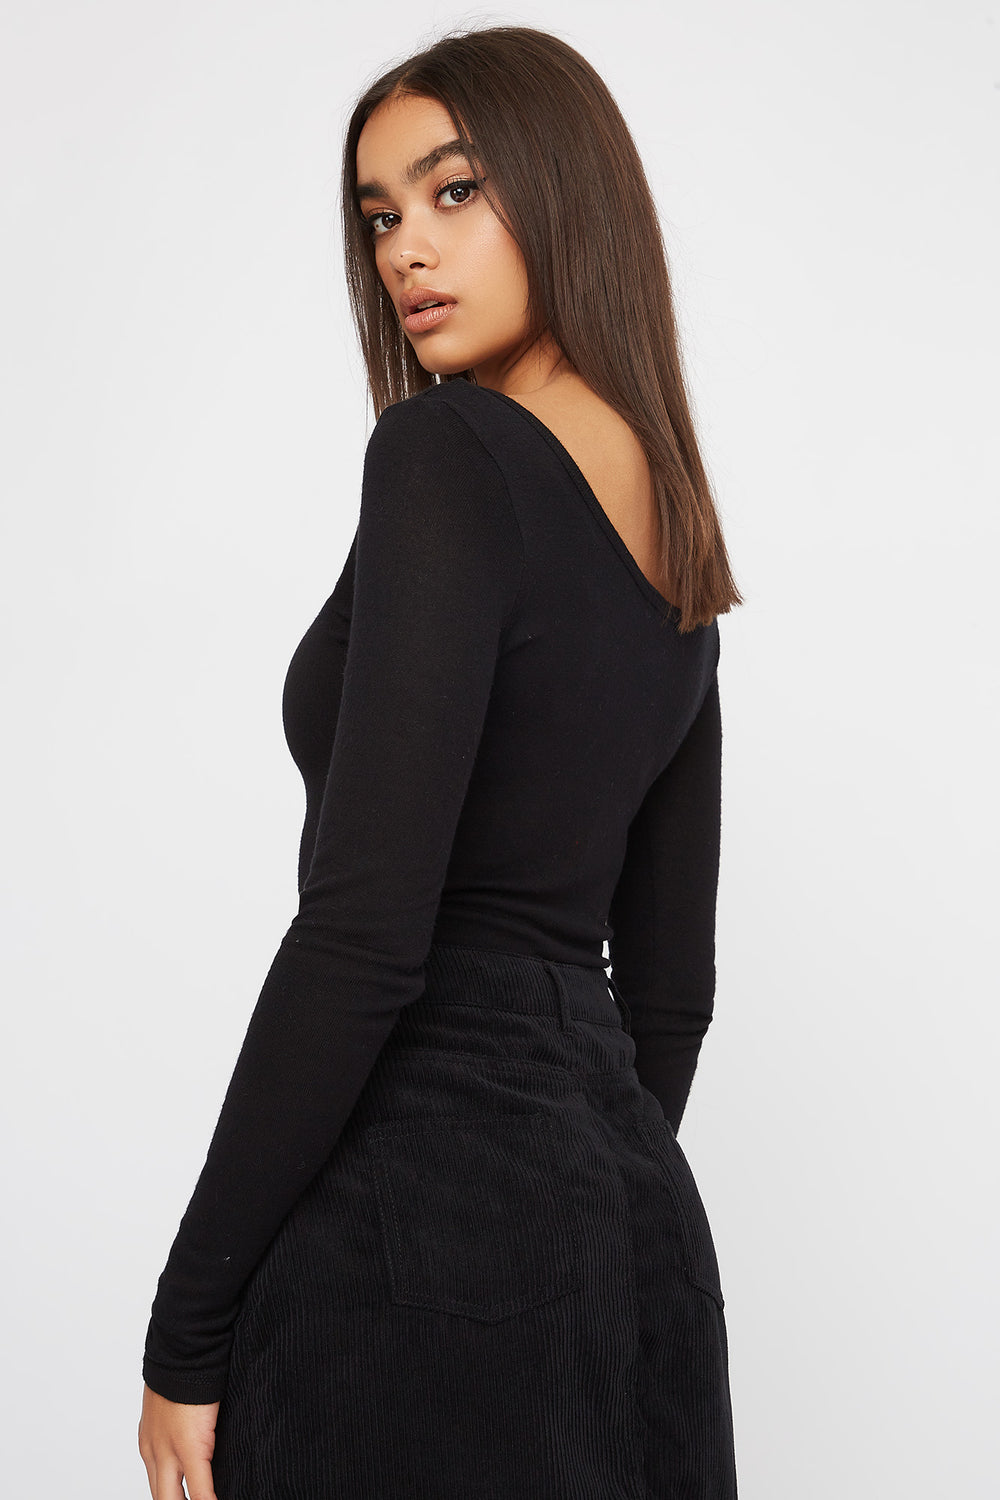 Scoop Neck Button Long Sleeve Black